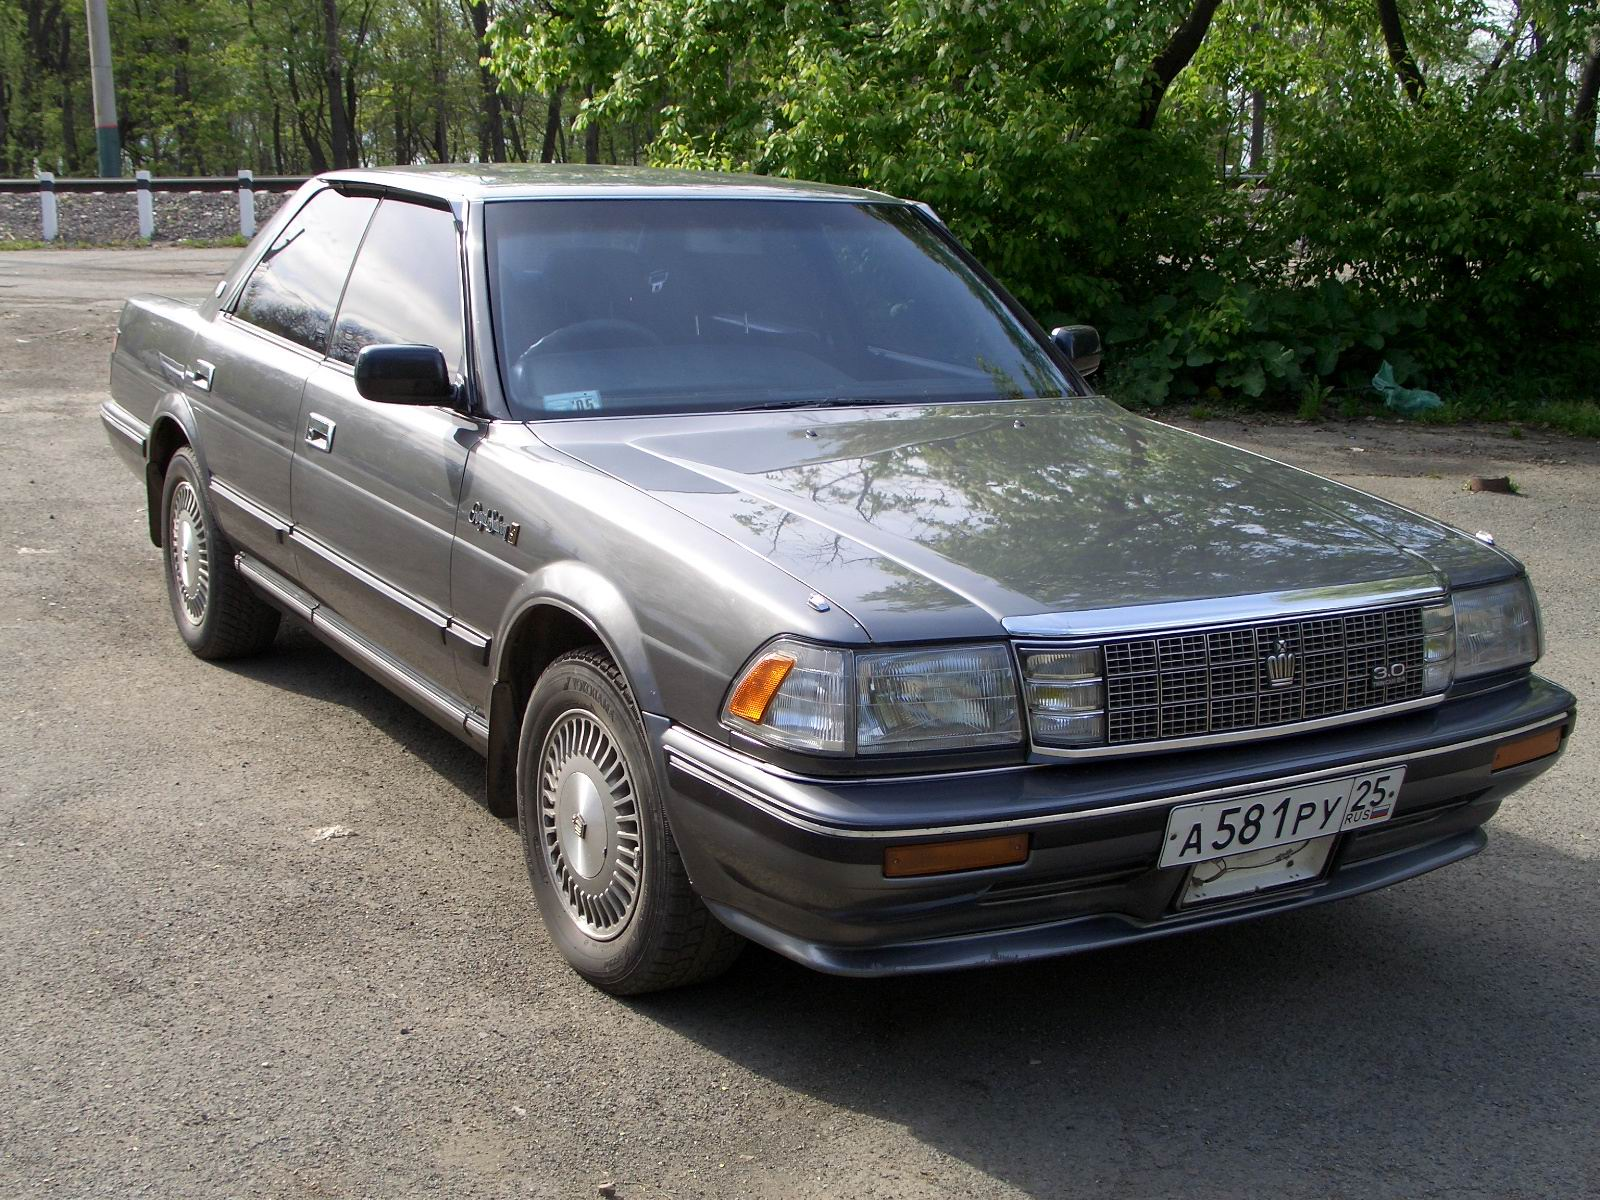 1988 toyota crown pictures 3000cc gasoline fr or rr automatic for sale. Black Bedroom Furniture Sets. Home Design Ideas